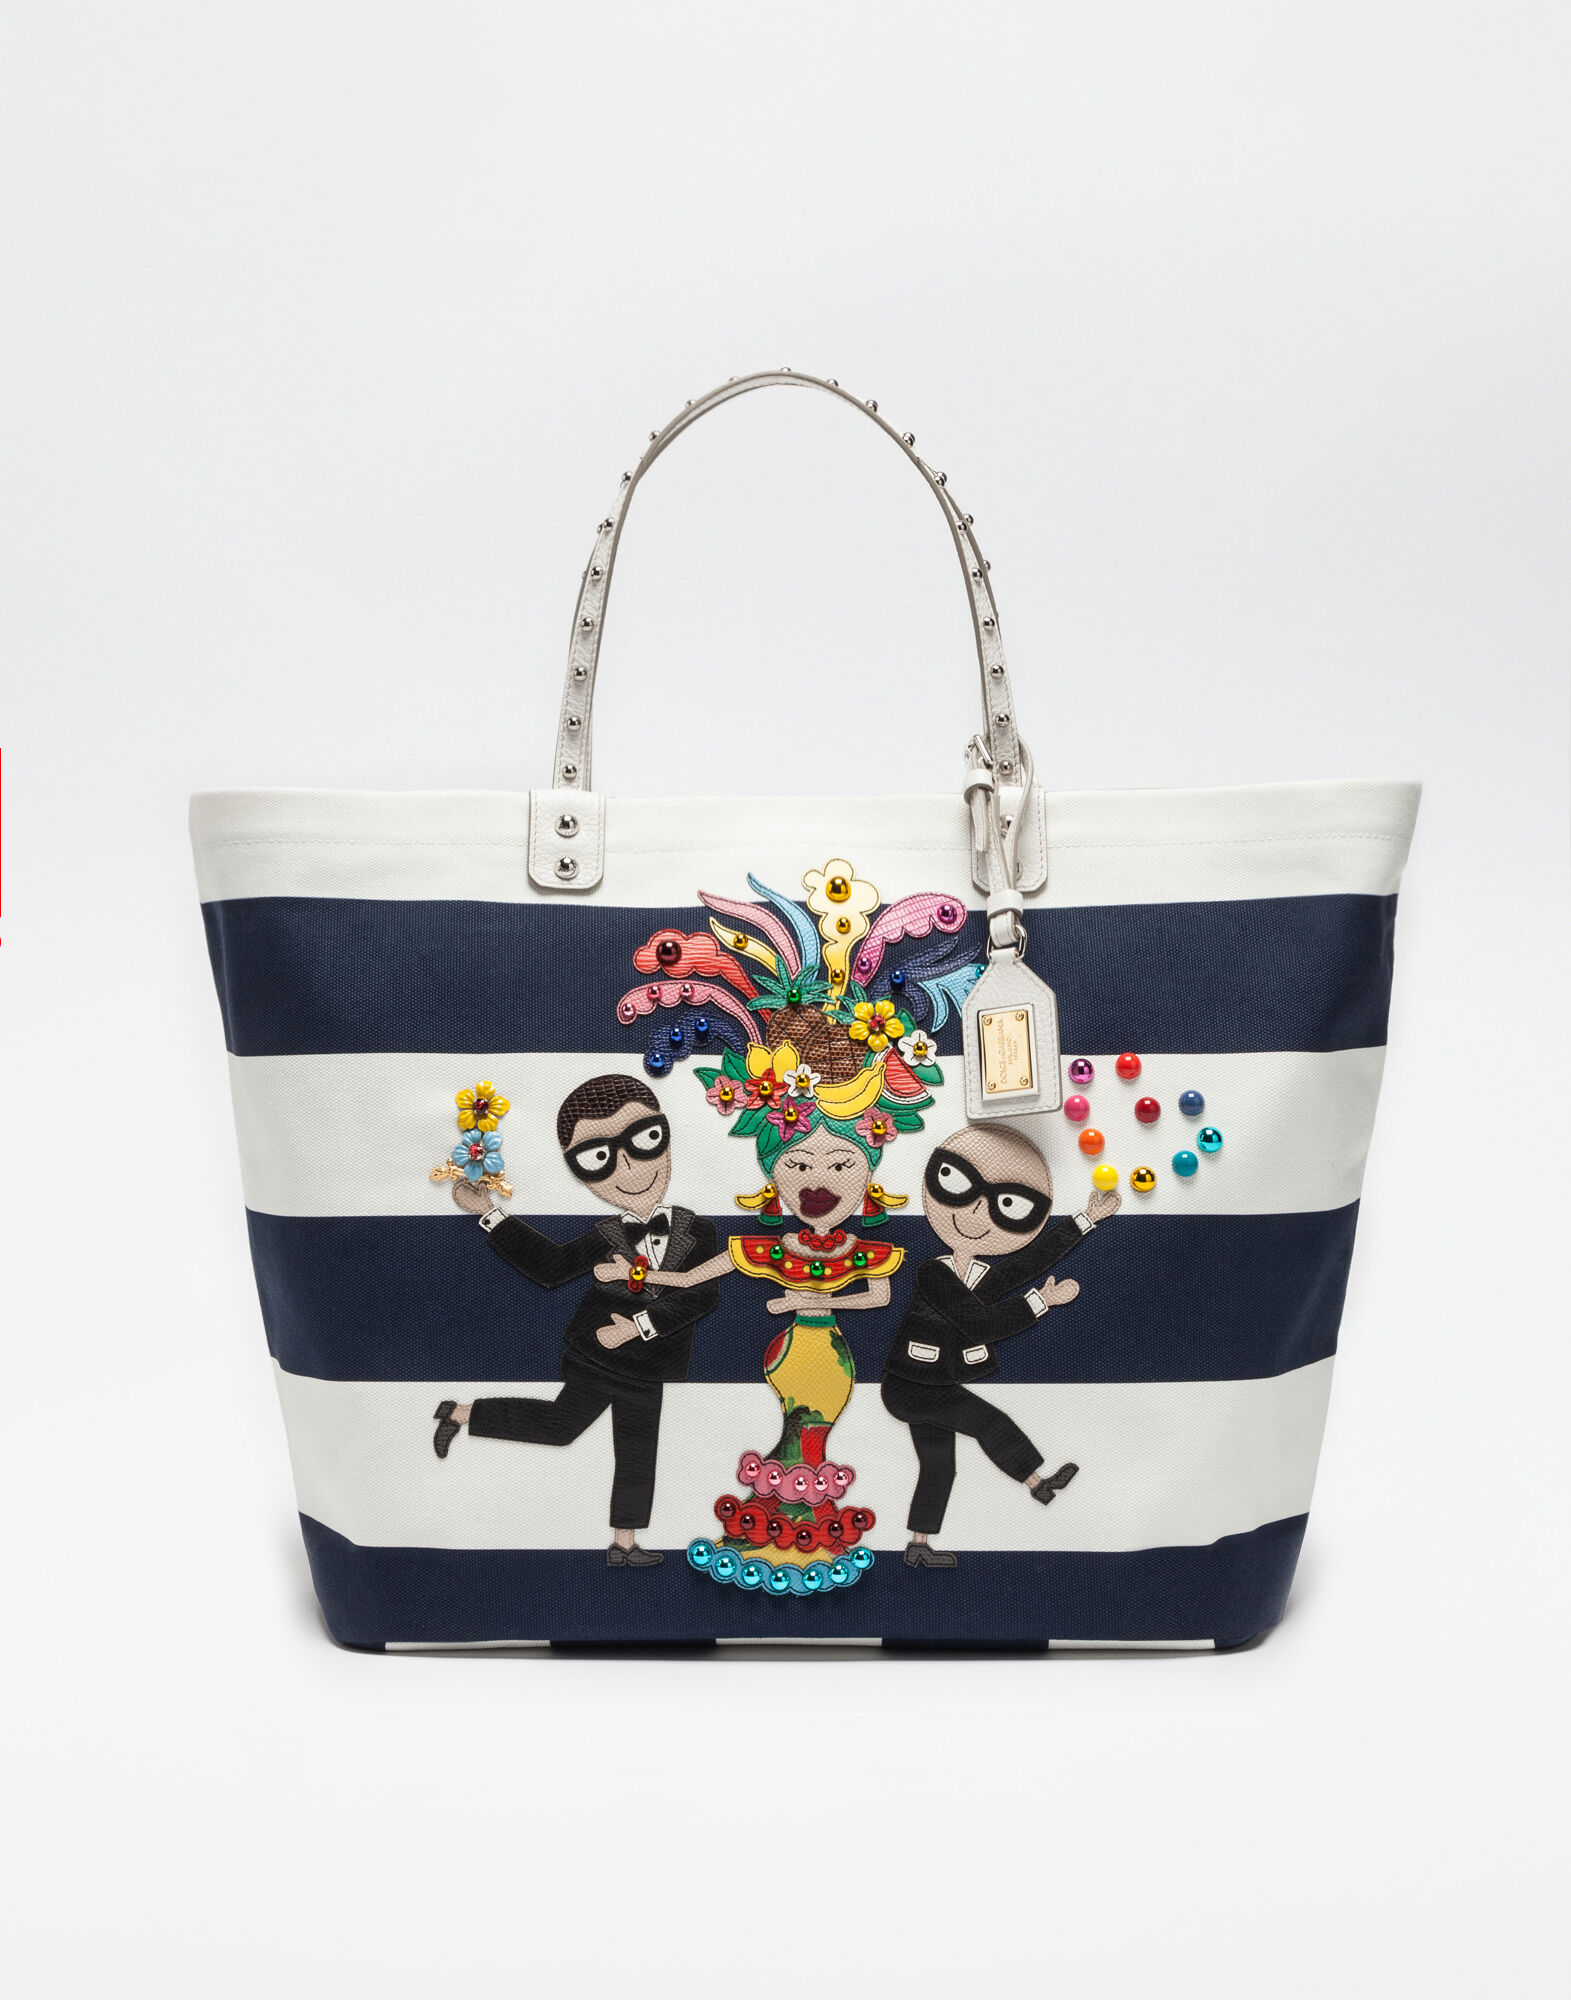 Tote bags for women | Dolce&Gabbana - BEATRICE BAG IN PRINTED ...